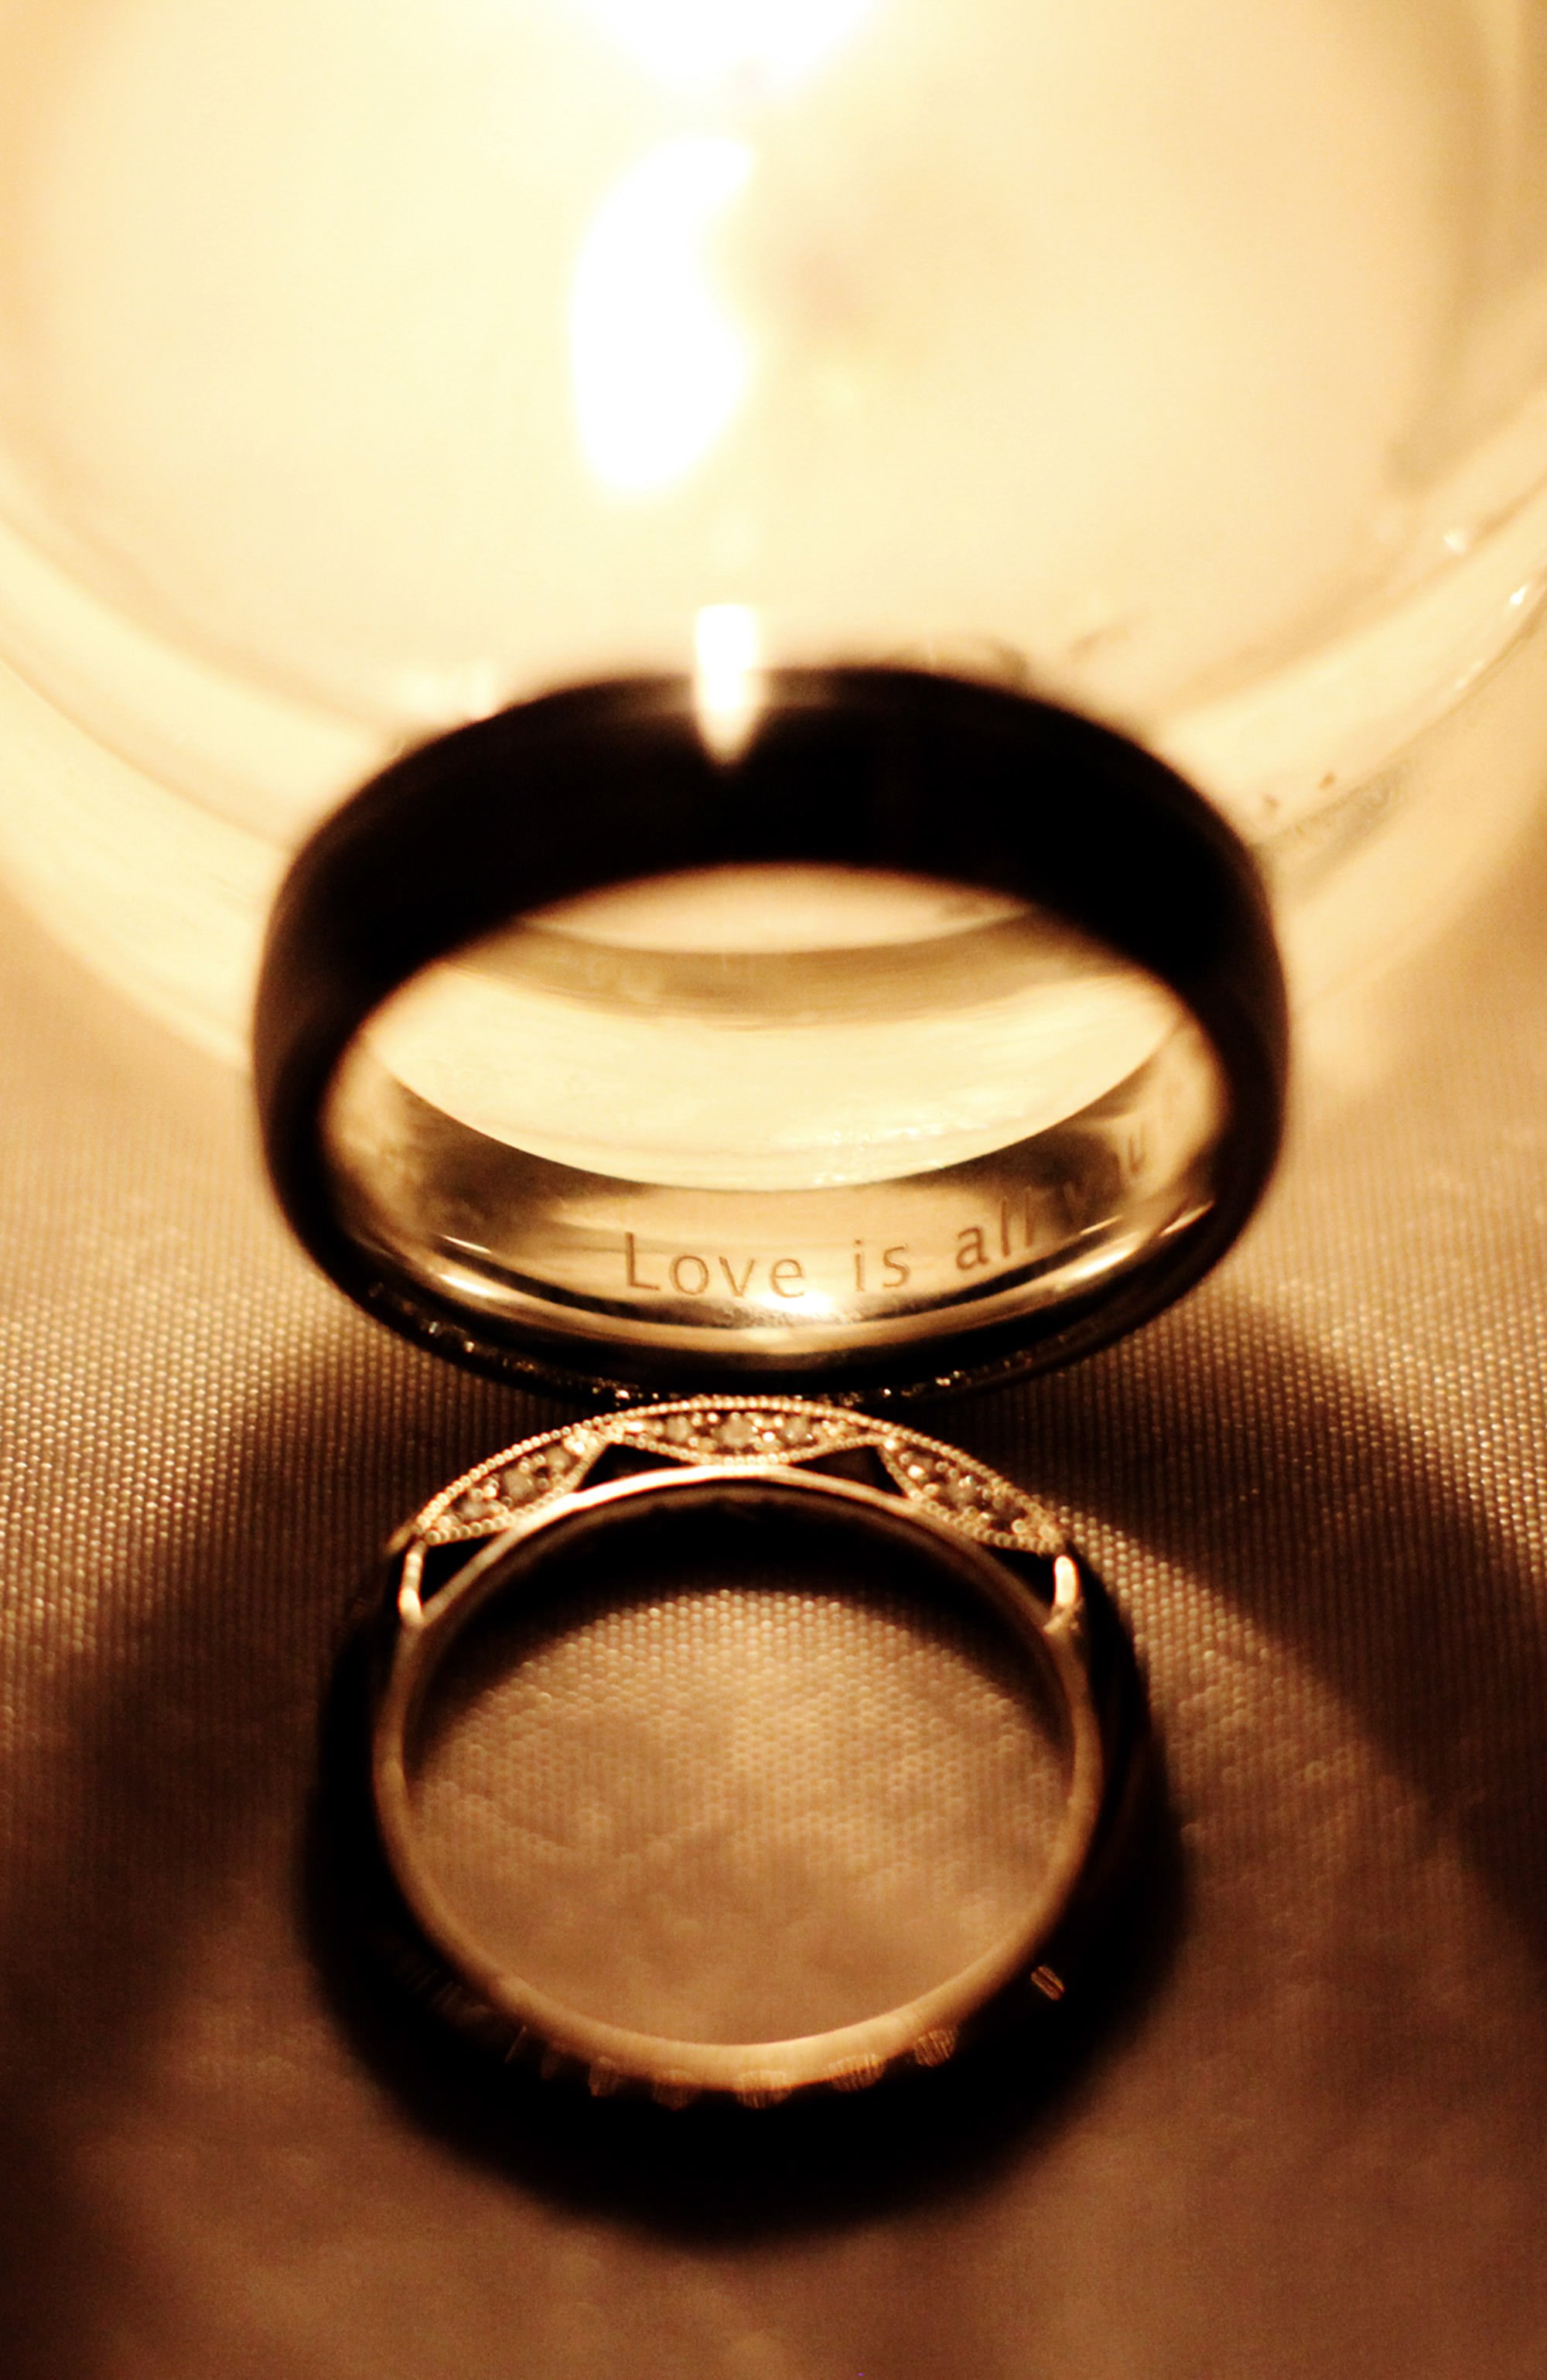 A detail of the couple's rings.